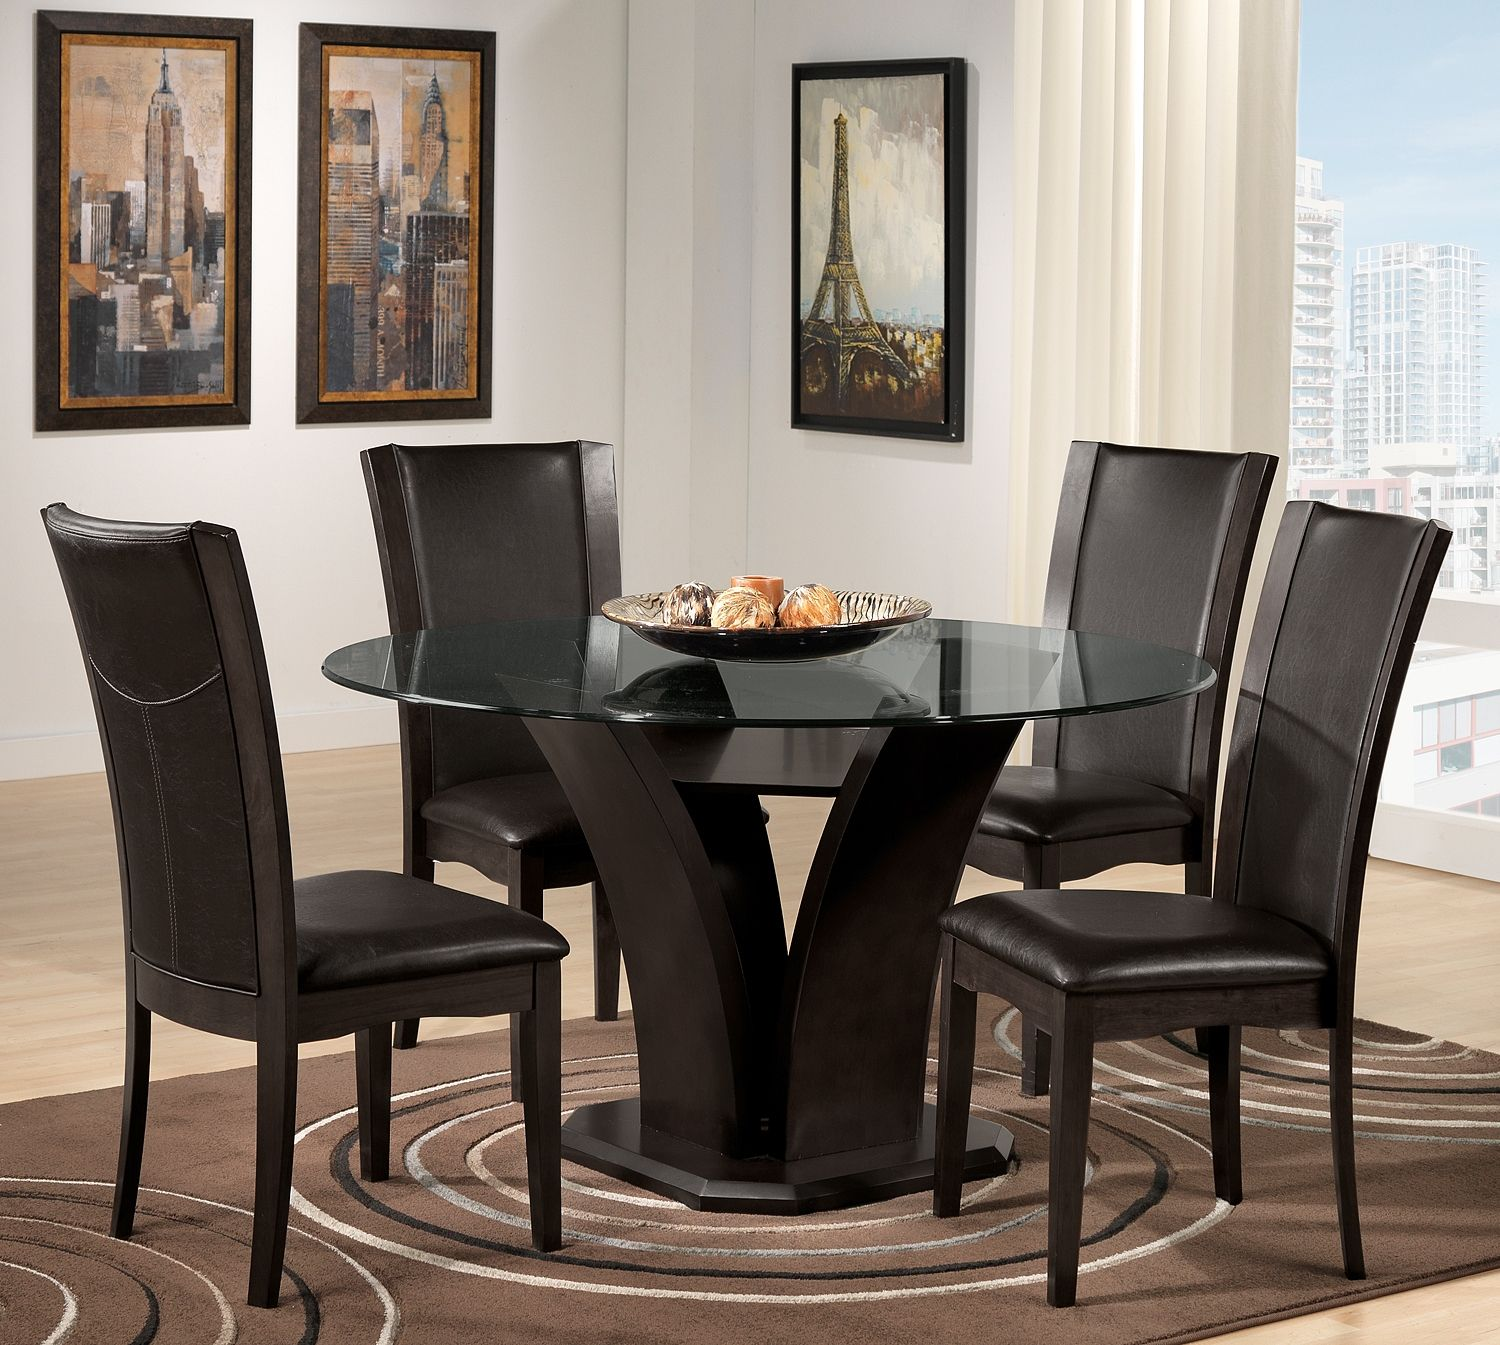 francesca ii casual dining 5 pc. dinette - leon's 899.99 like this